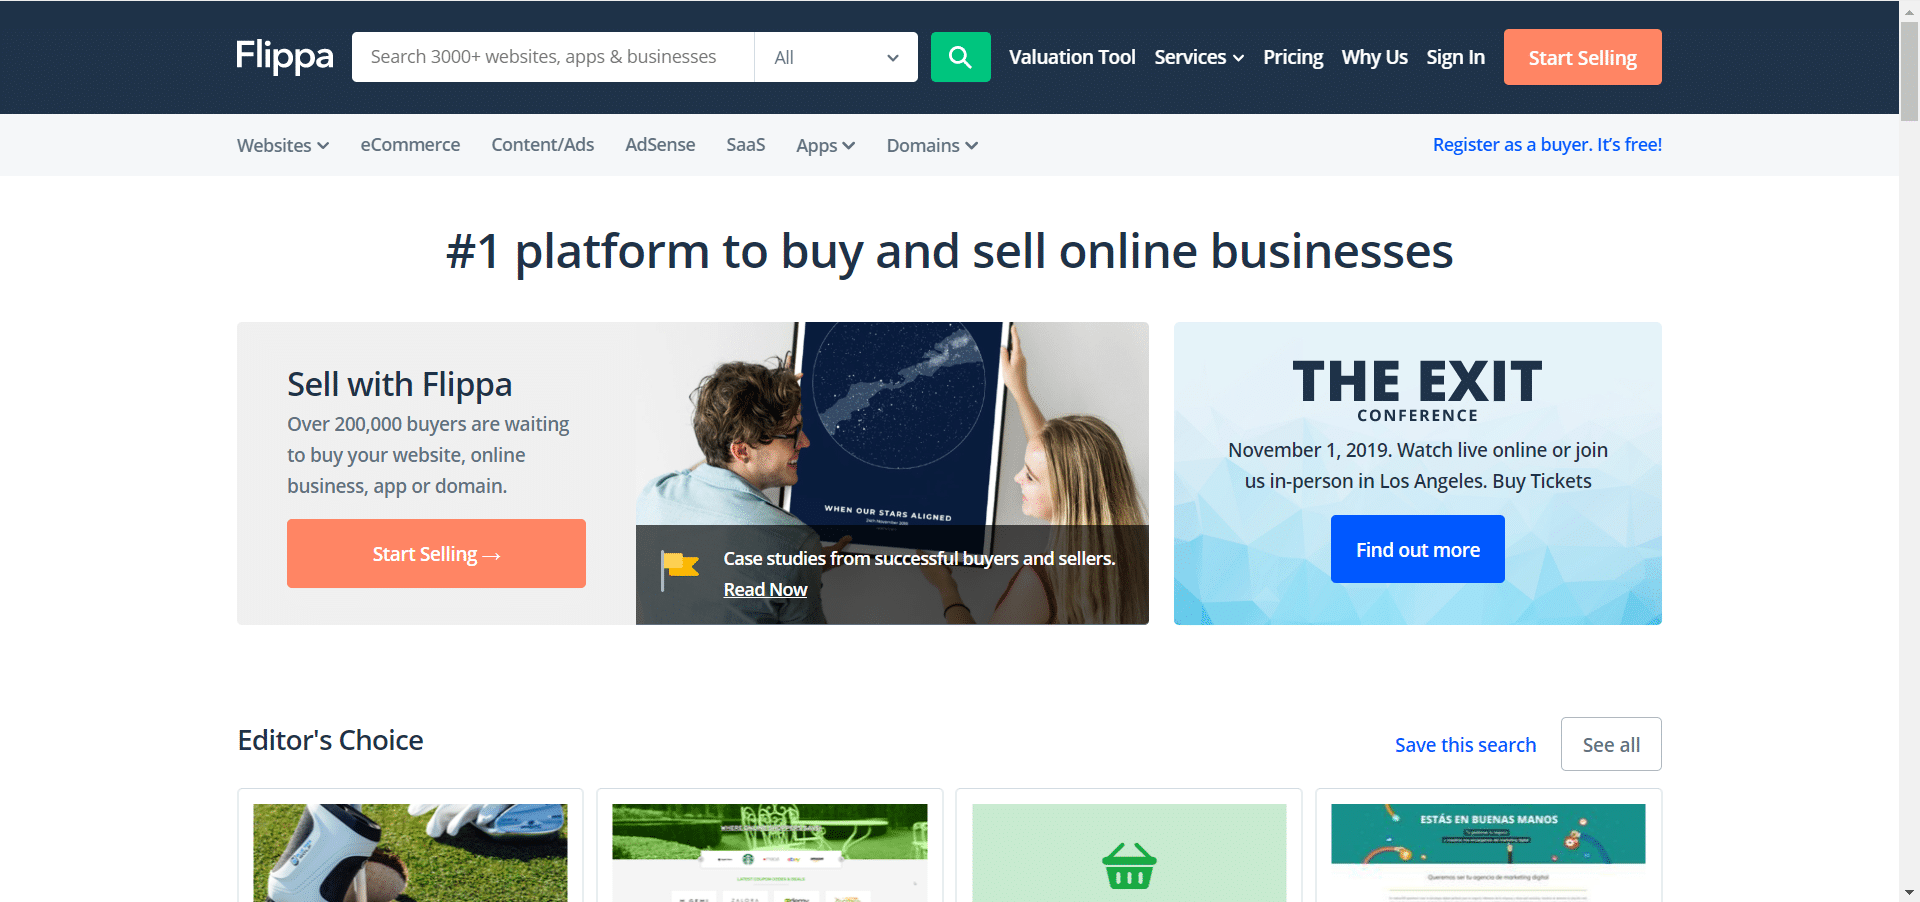 Flippa Review: Can You Buy A [Non Scam] Website In 2020?